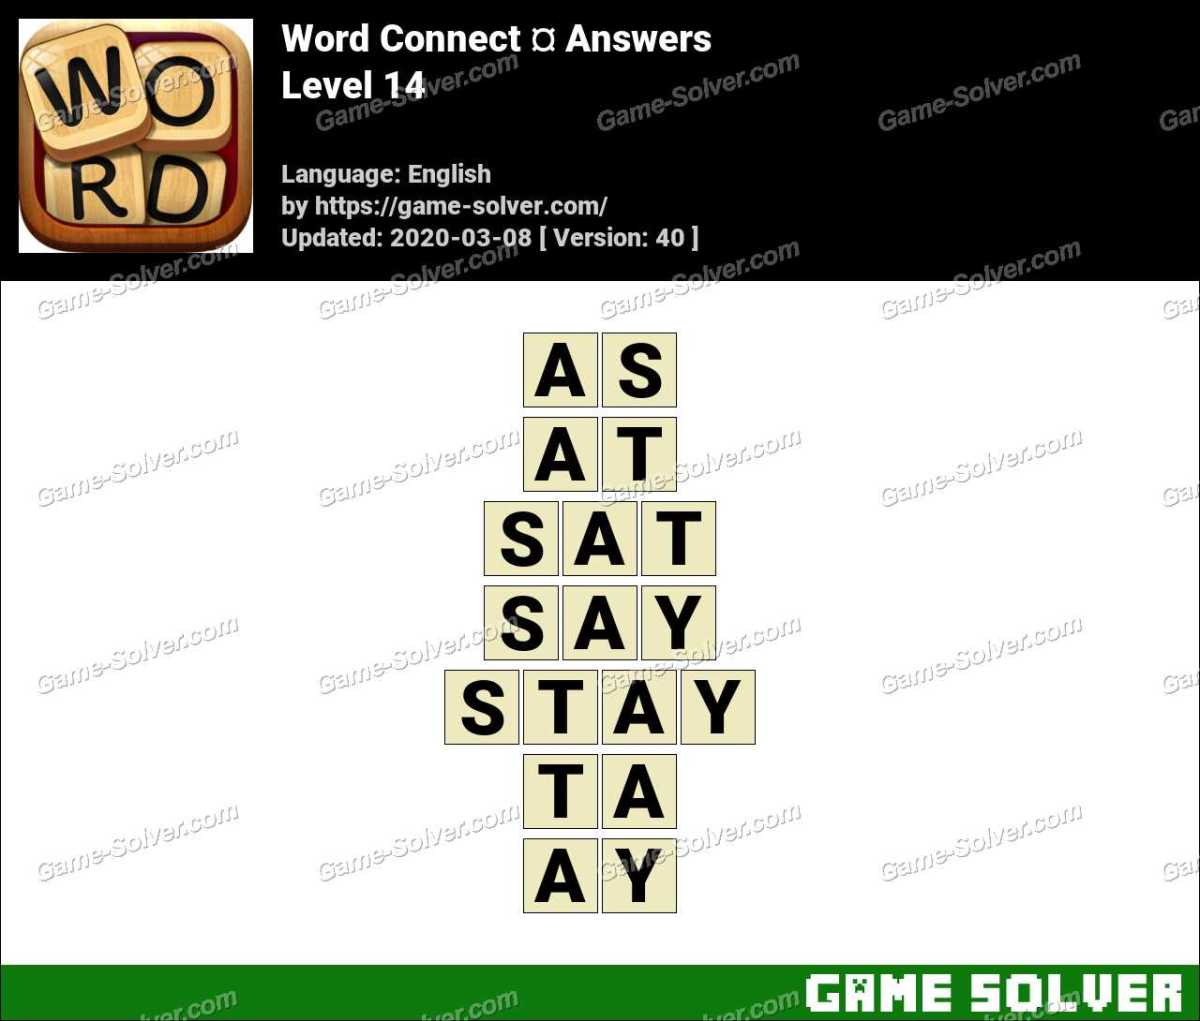 Word Connect Level 14 Answers